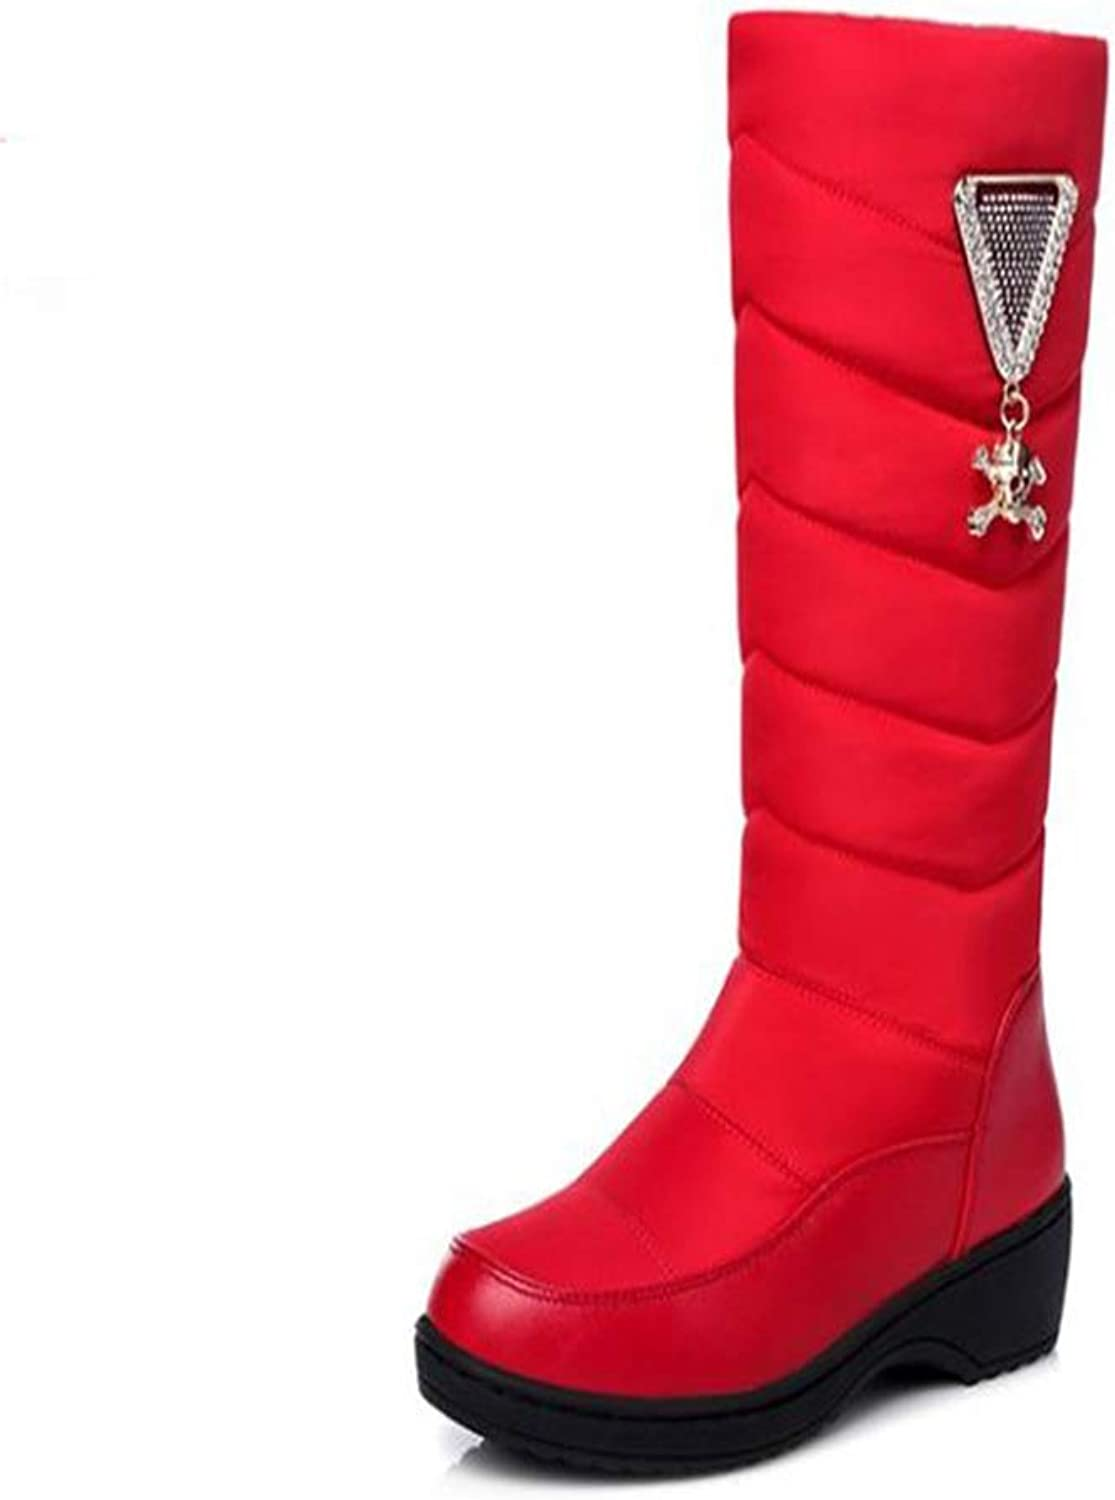 Excellent.c Down Boots Snow Boots Autumn and Winter Boots Women's Warm Boots